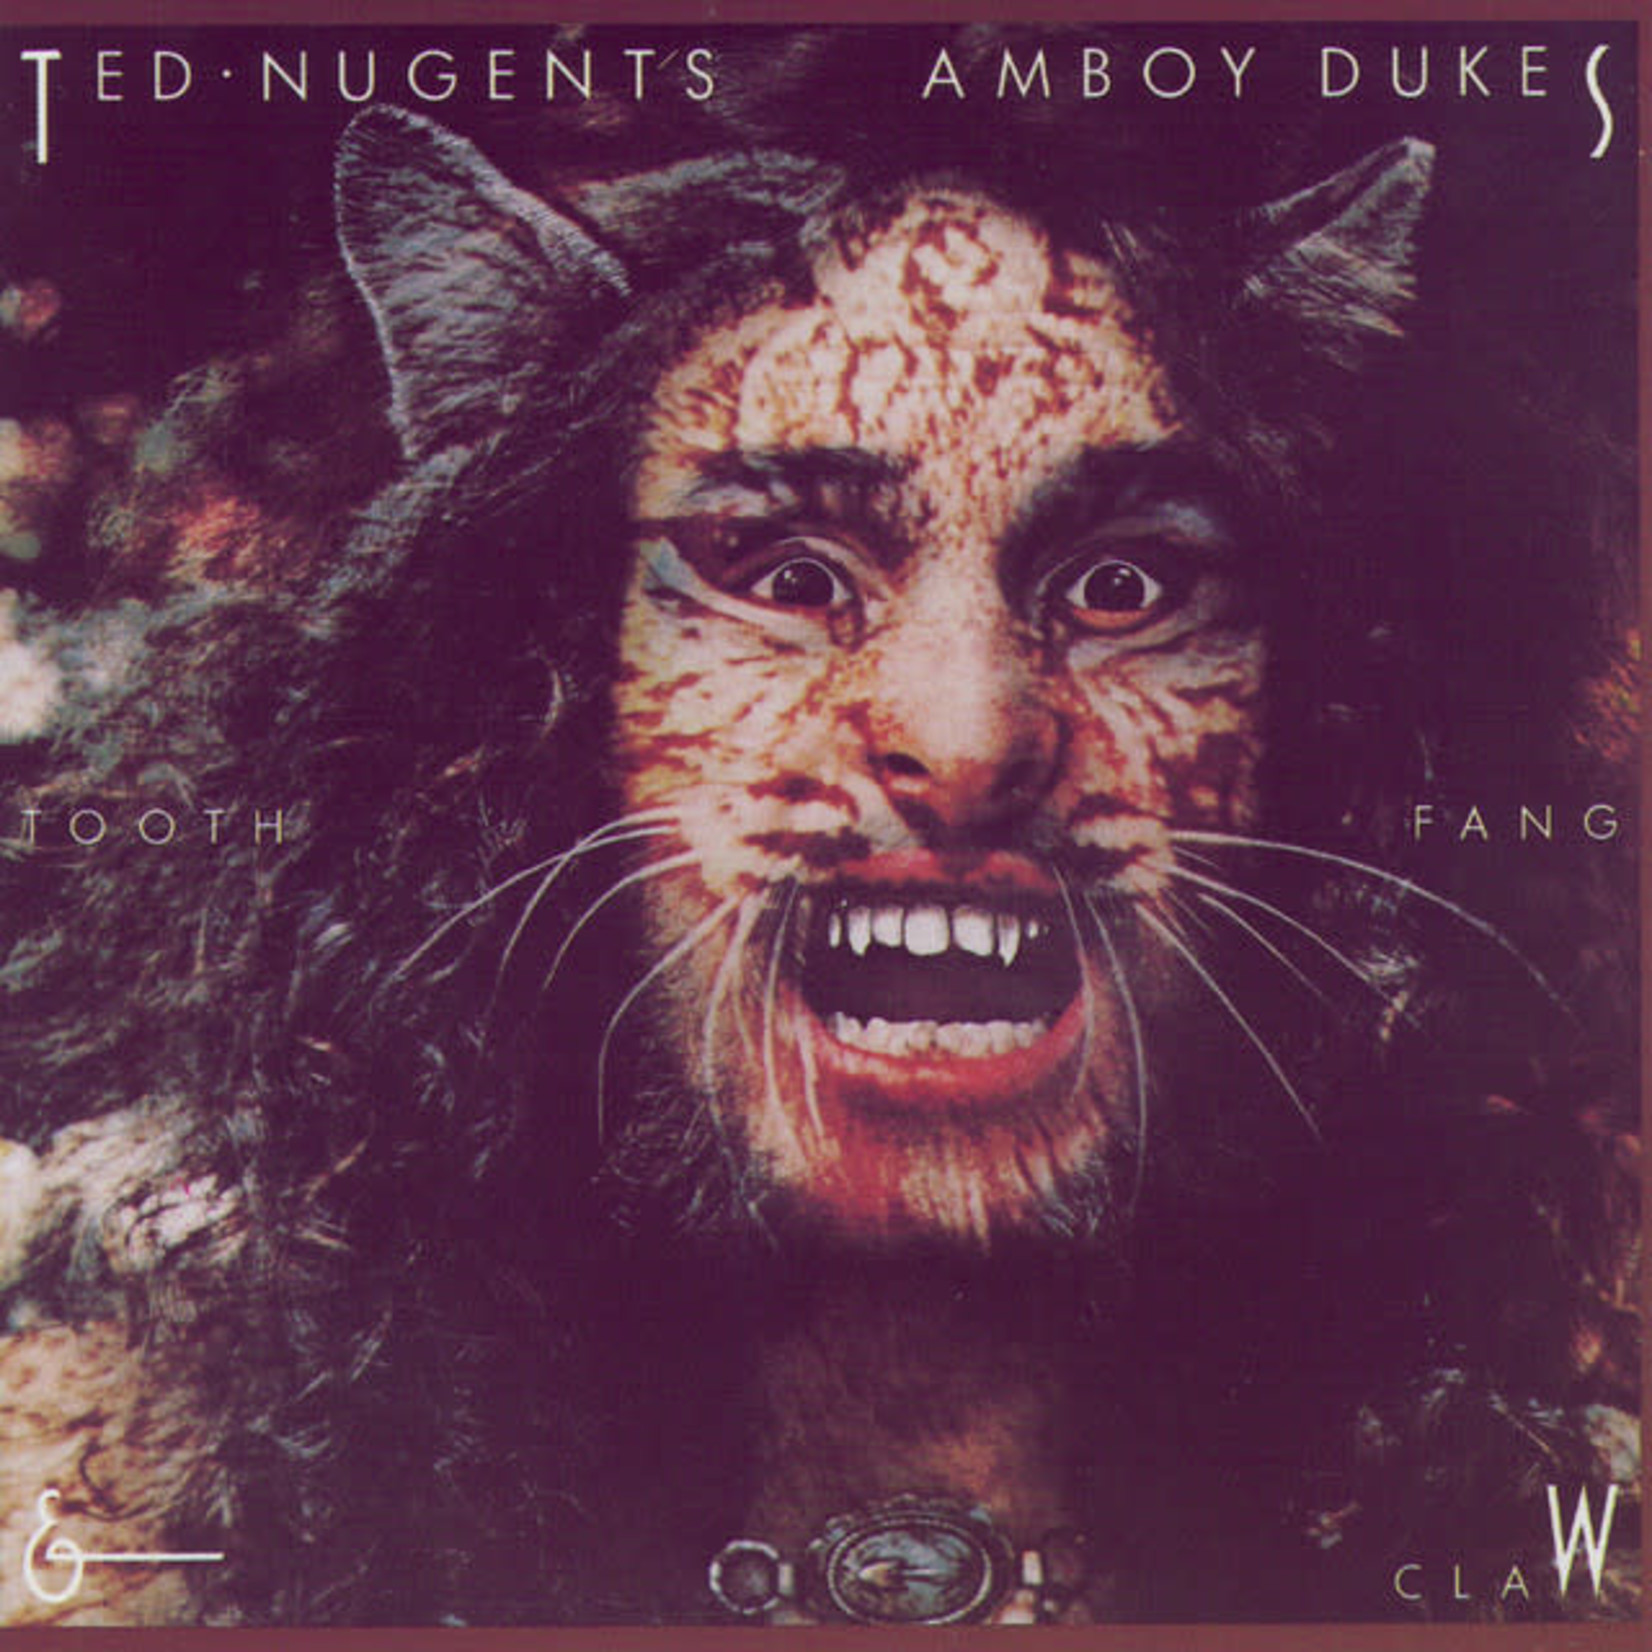 Vinyl Ted Nugent's Amboy Dukes - Tooth Fans & Claw (Used)